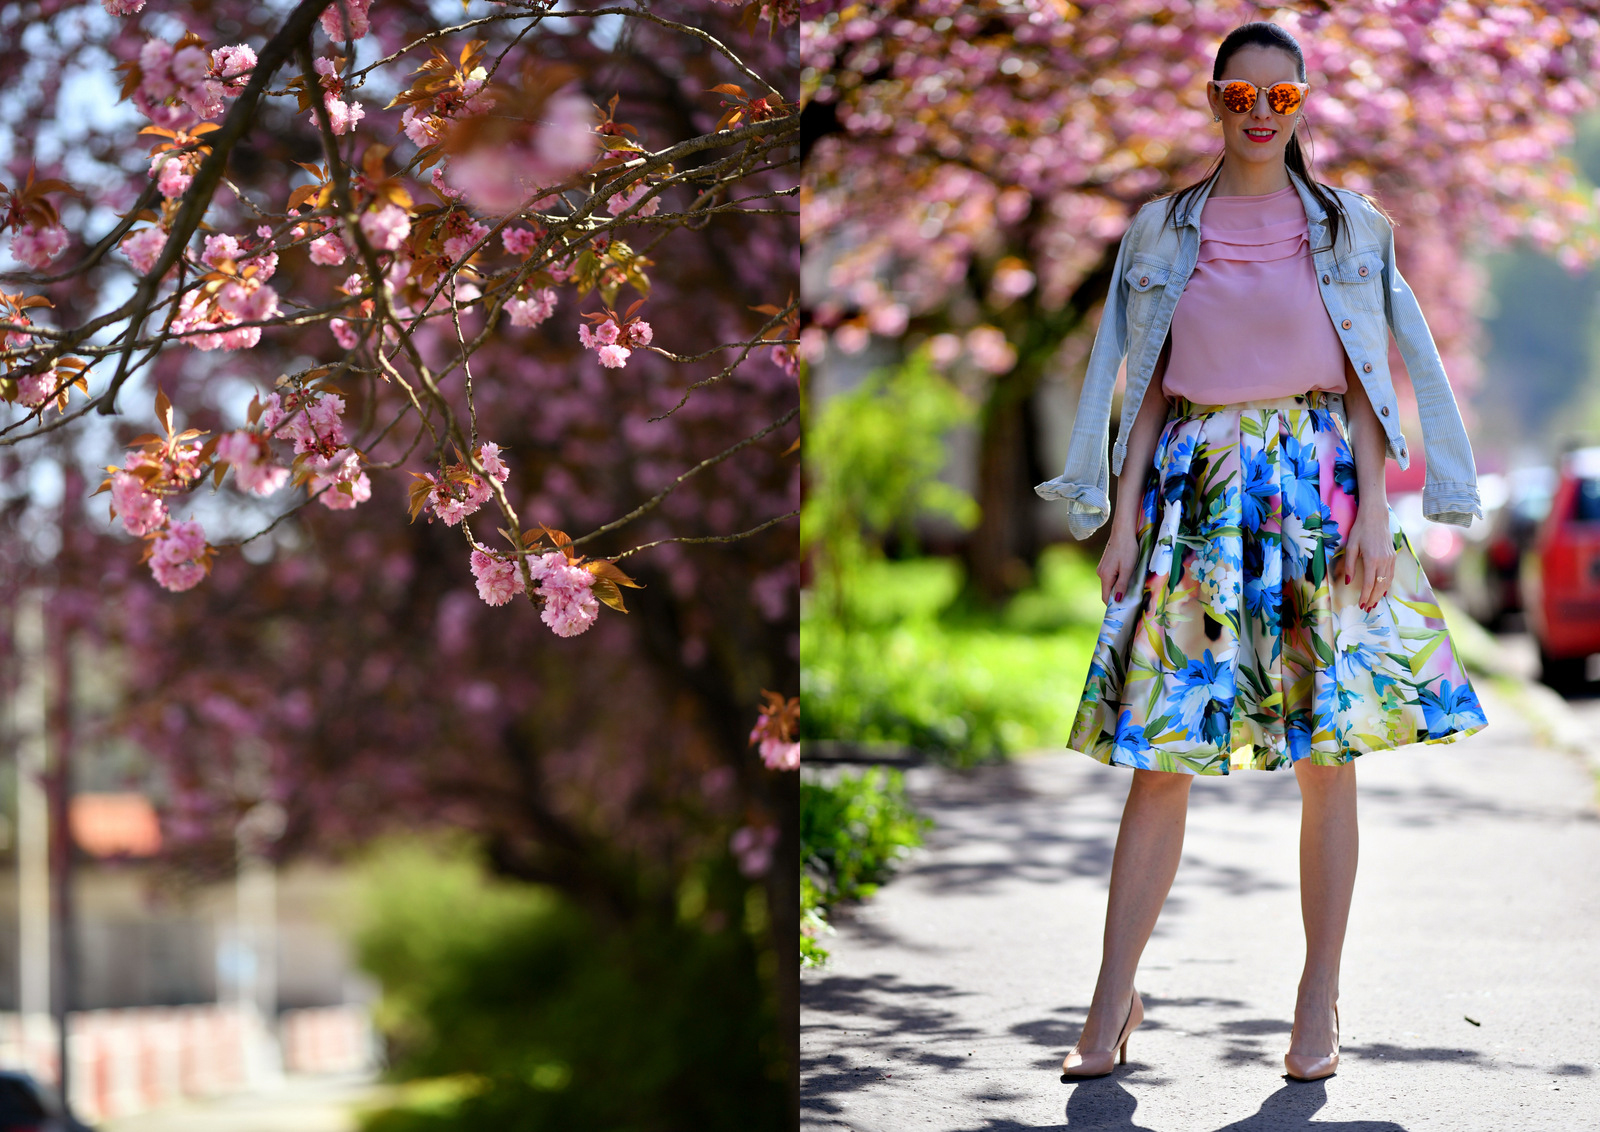 ad7061201d kvetovaná midi sukňa    handmade floral midi skirt in outfit with pink  blouse